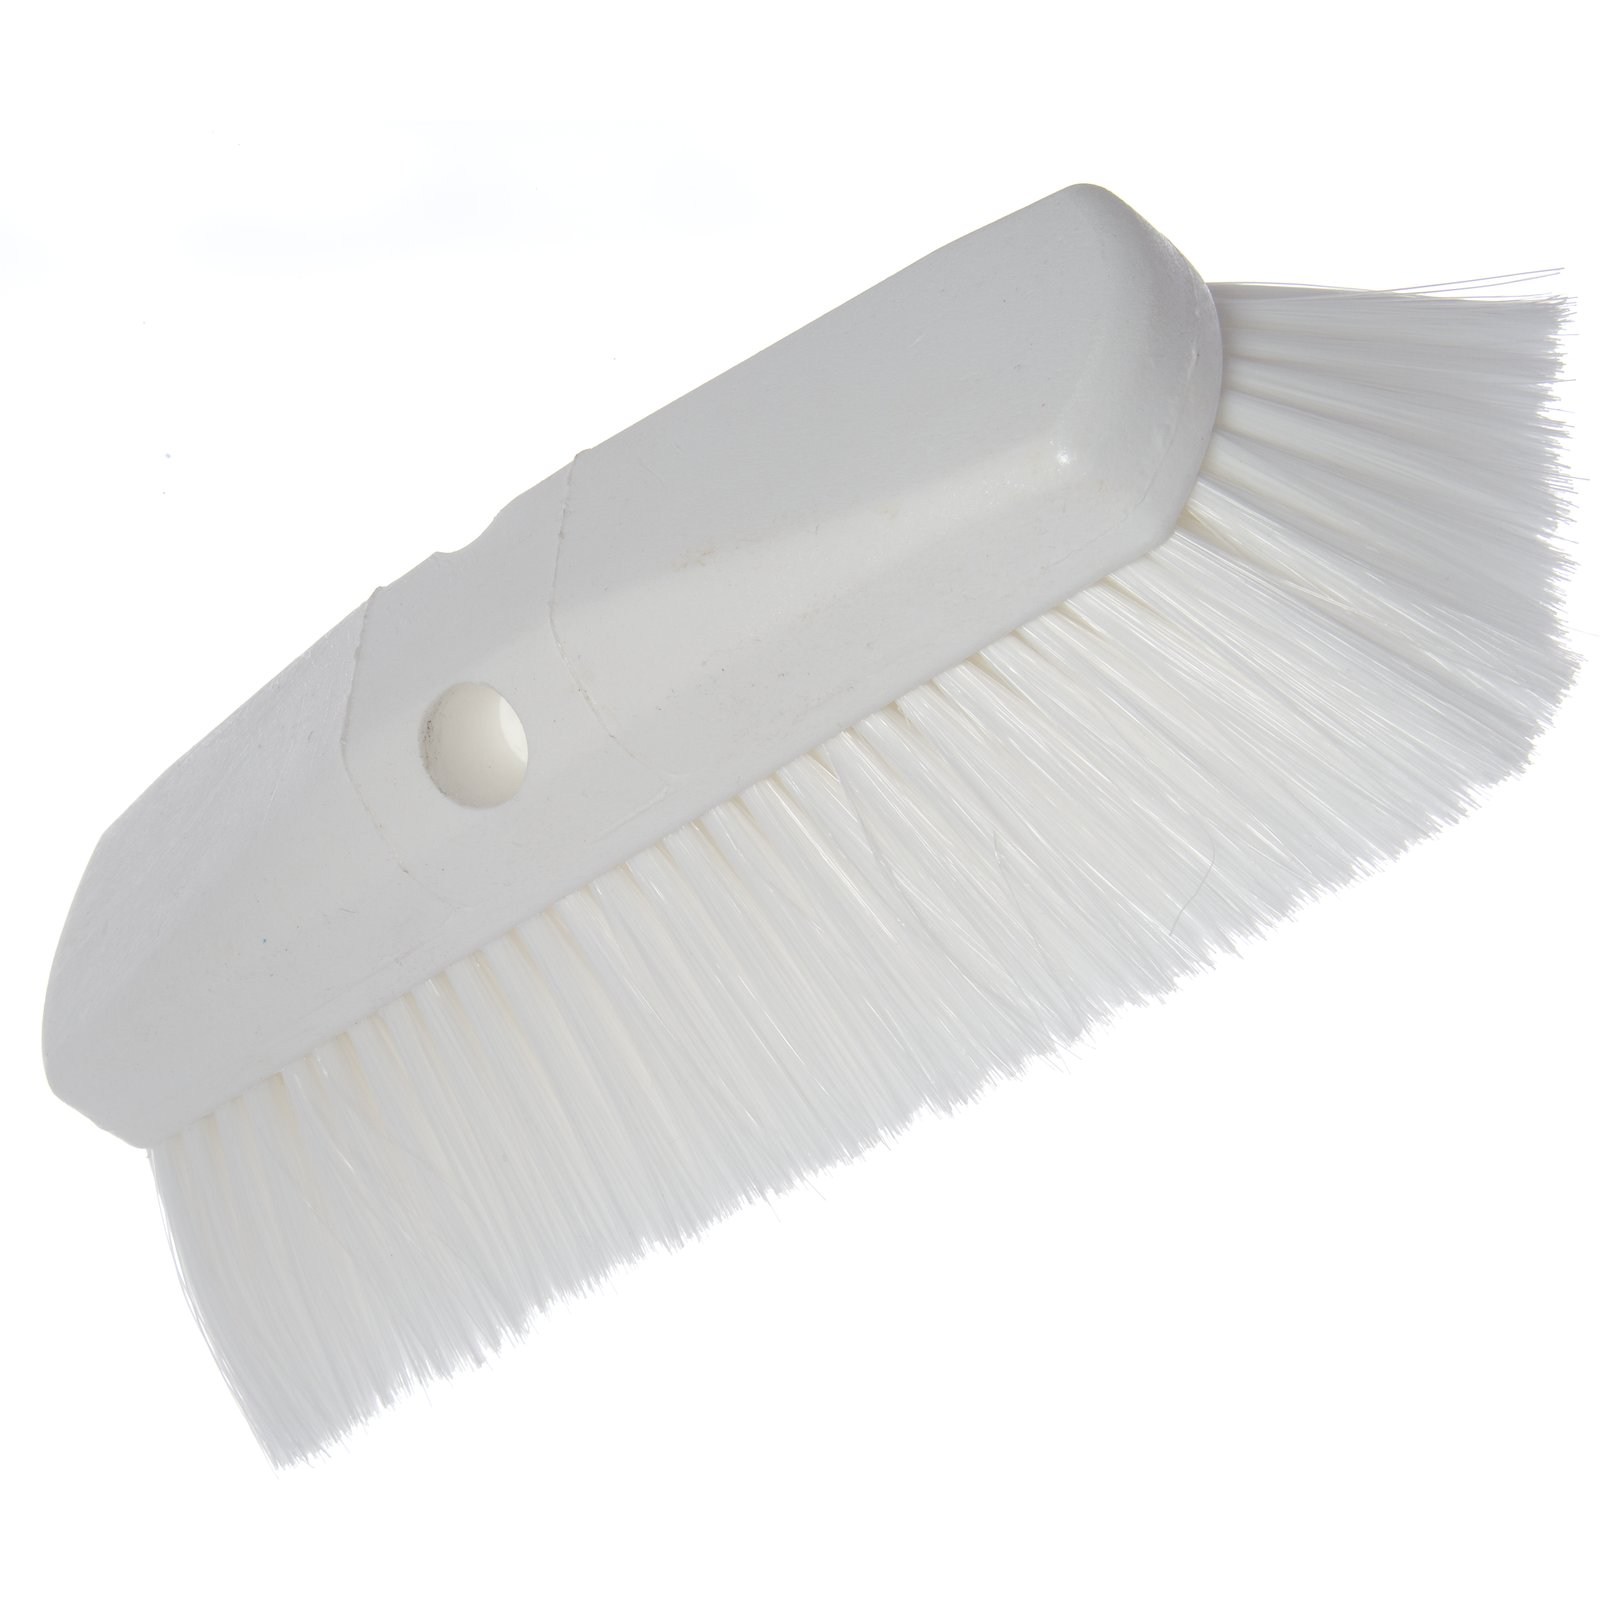 BRUSH WALL AND EQUIPMENT WHITE 10""